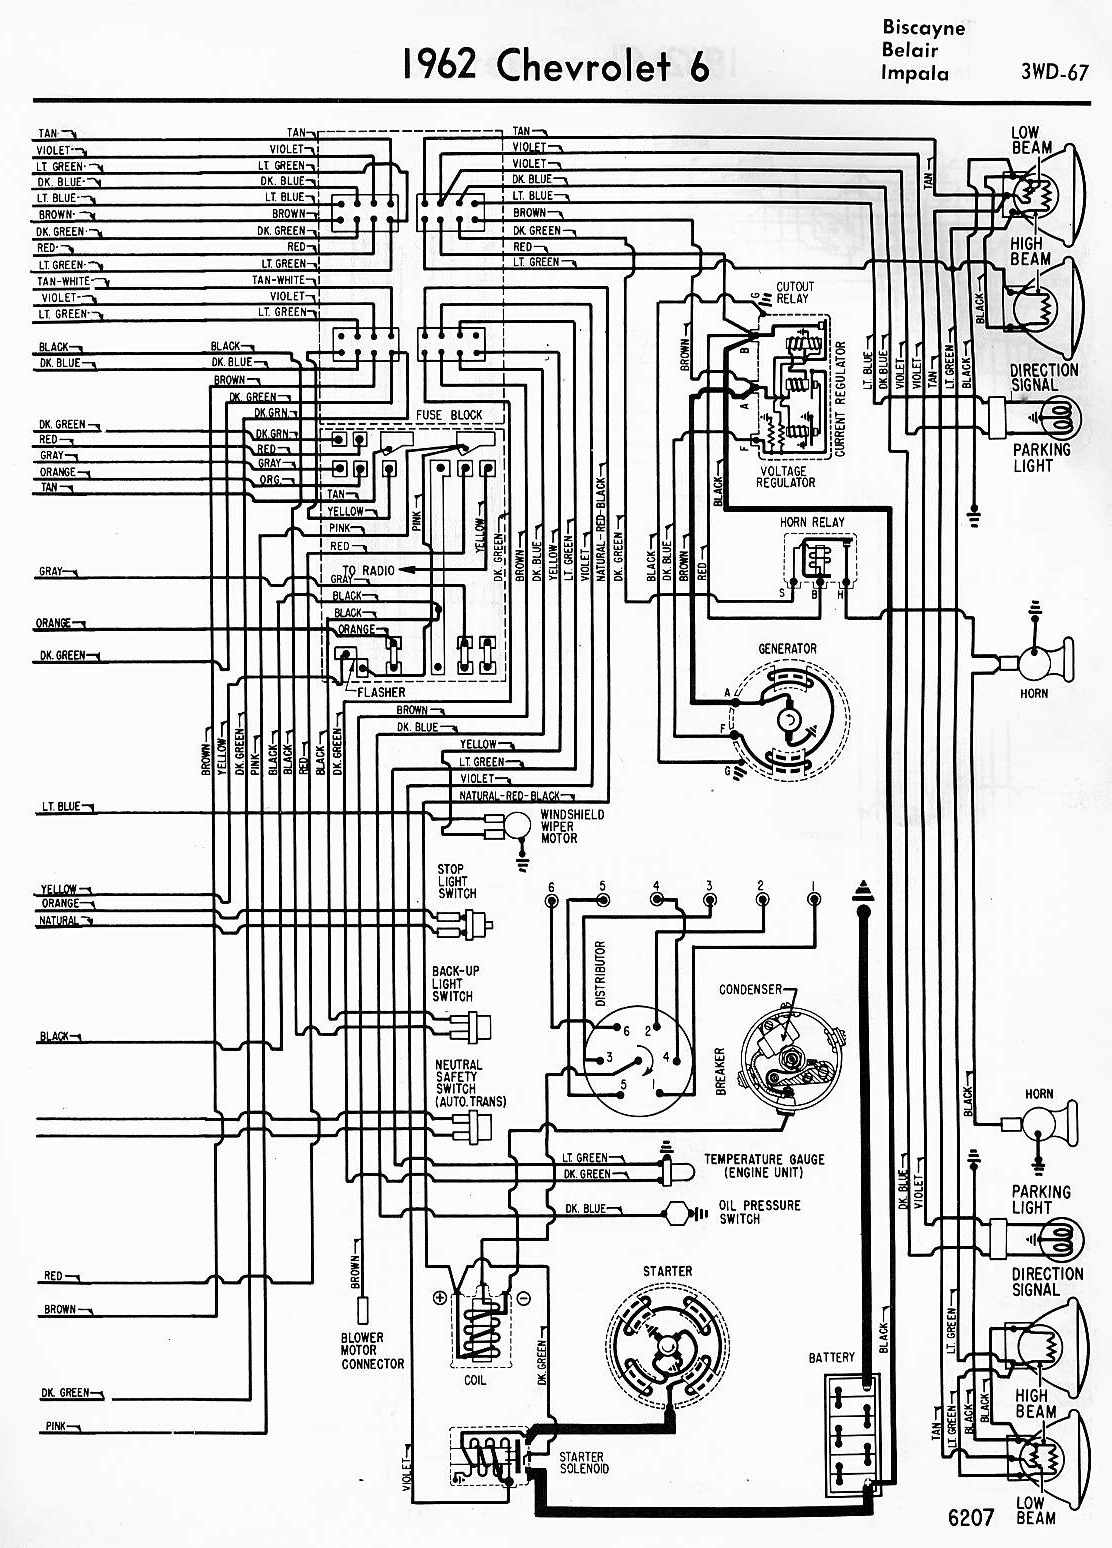 Jeep Cj5 Wiring Diagram Coil Library Engine Electrical Of 1962 Chevrolet 6